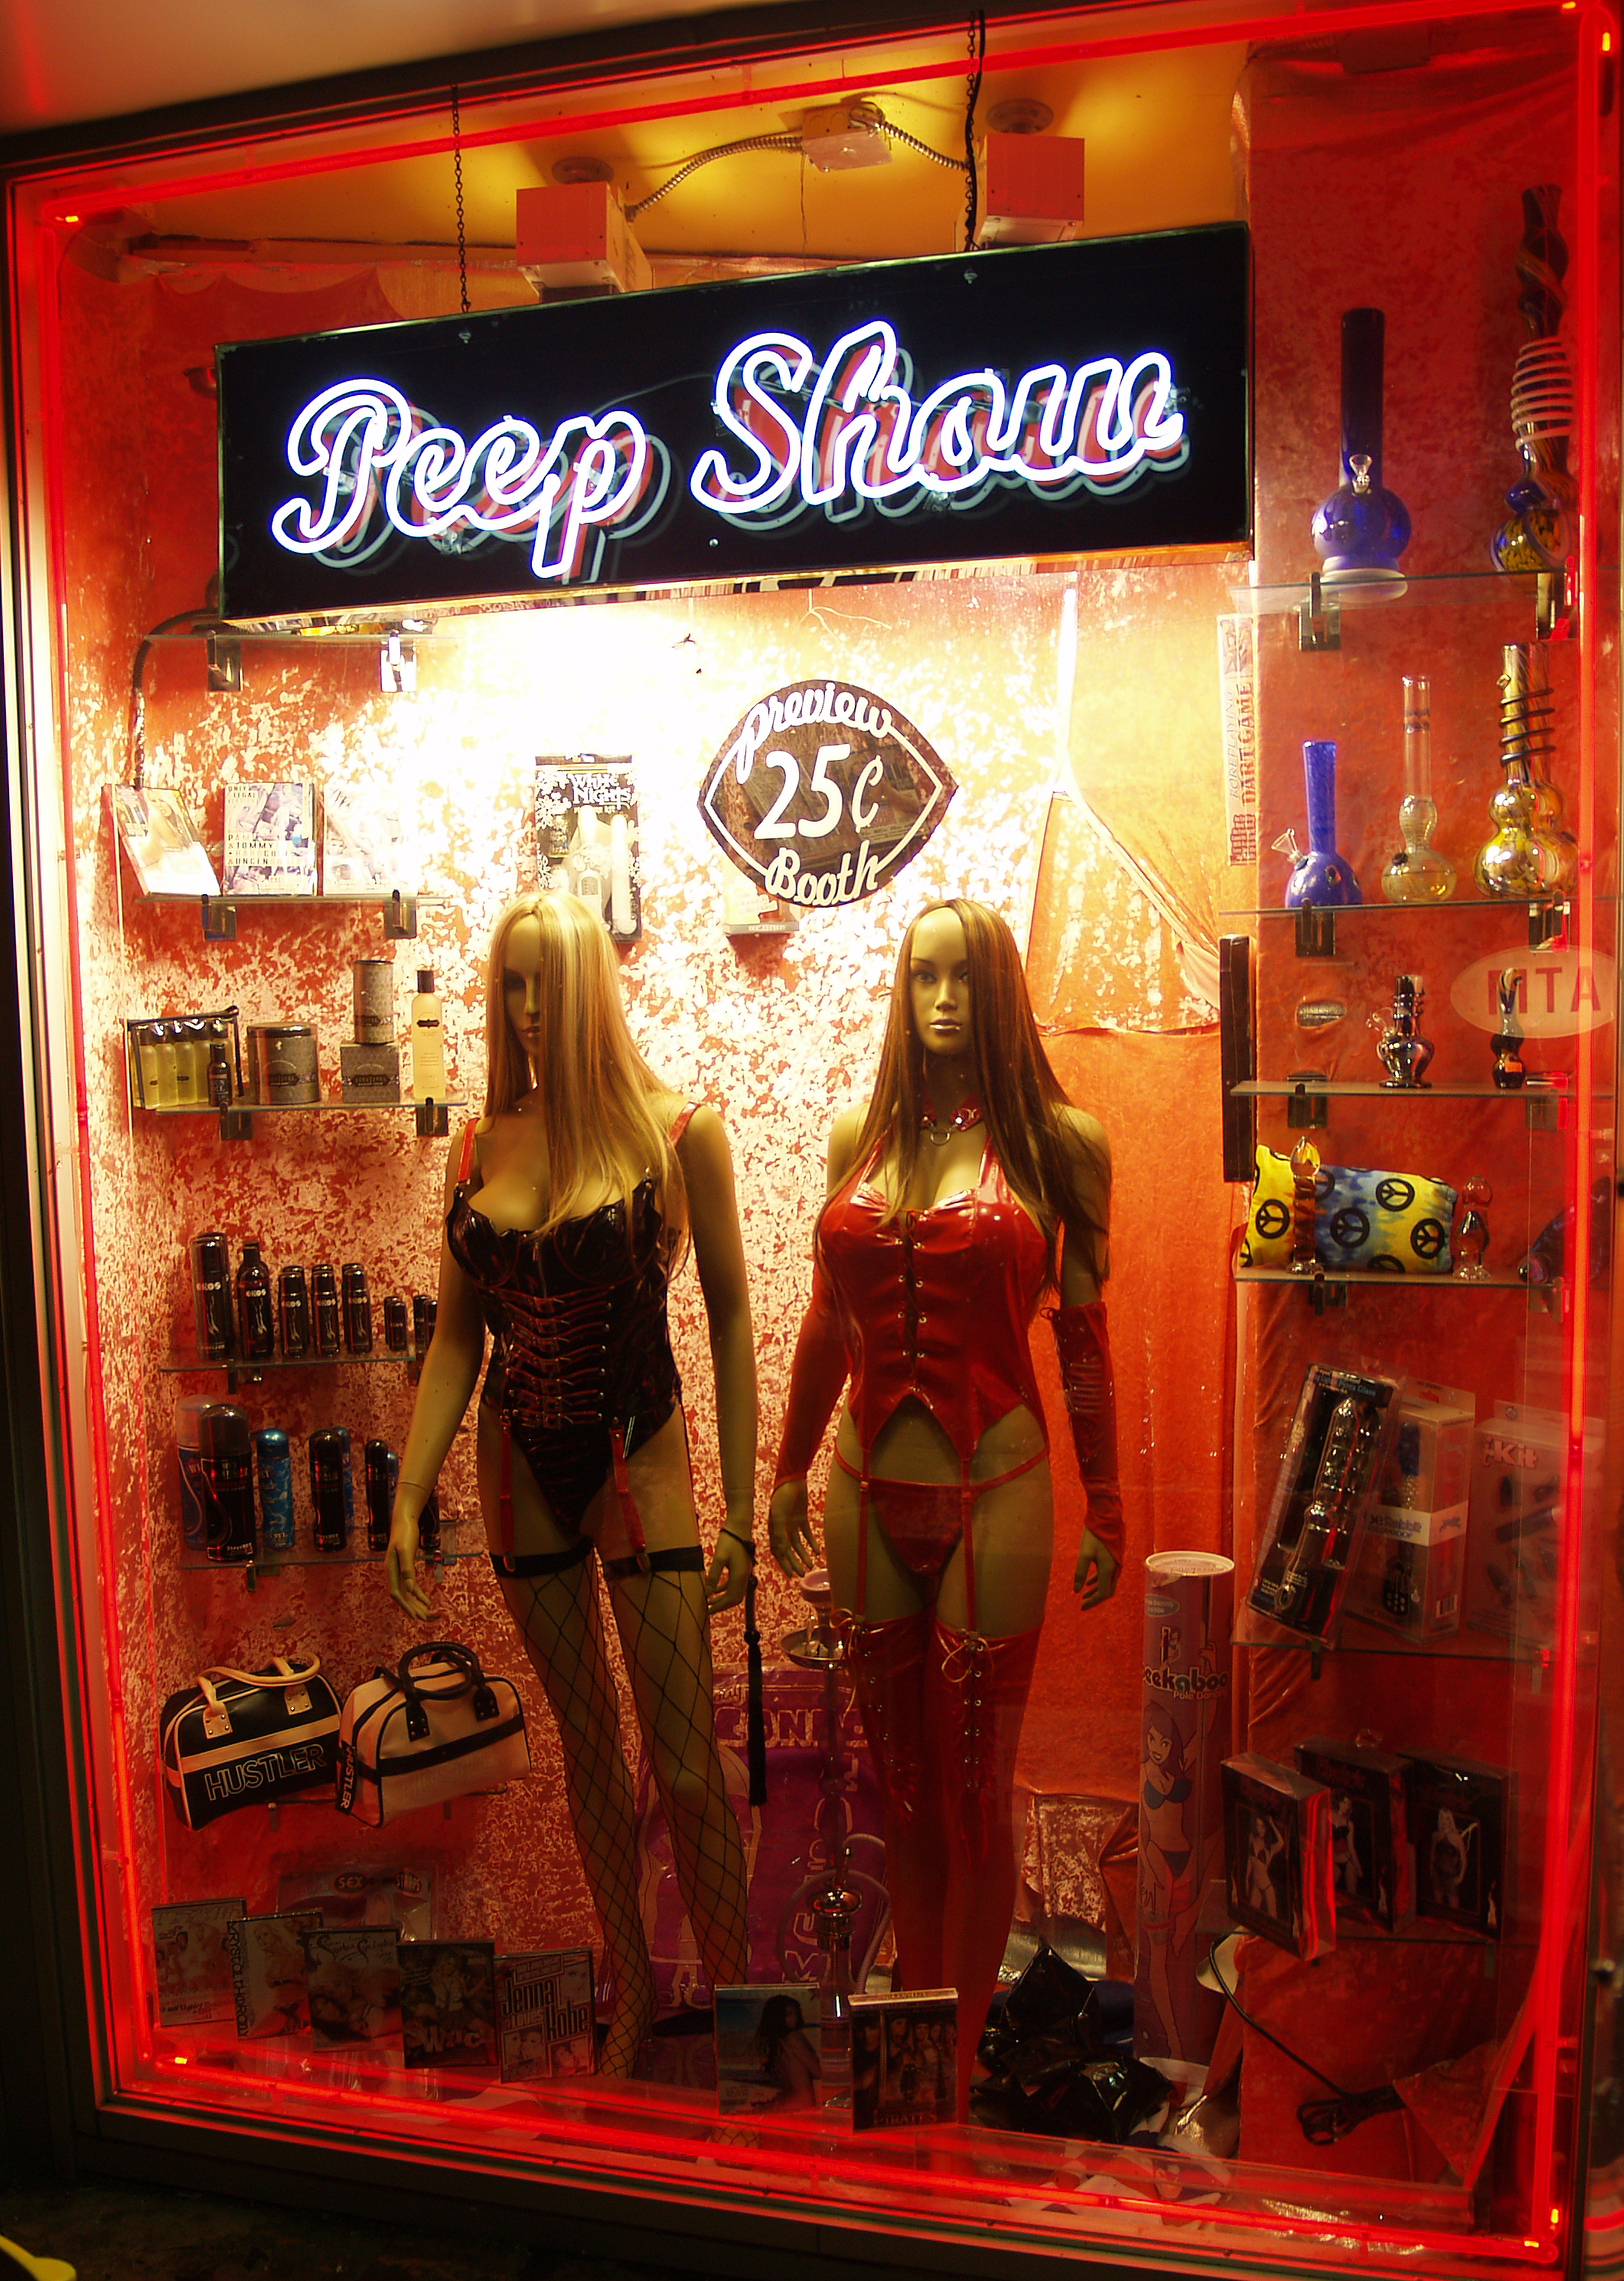 pornography should it be illegal or not writework peep show window displaying pornographic entertainment at cherries on st mark s place in new york